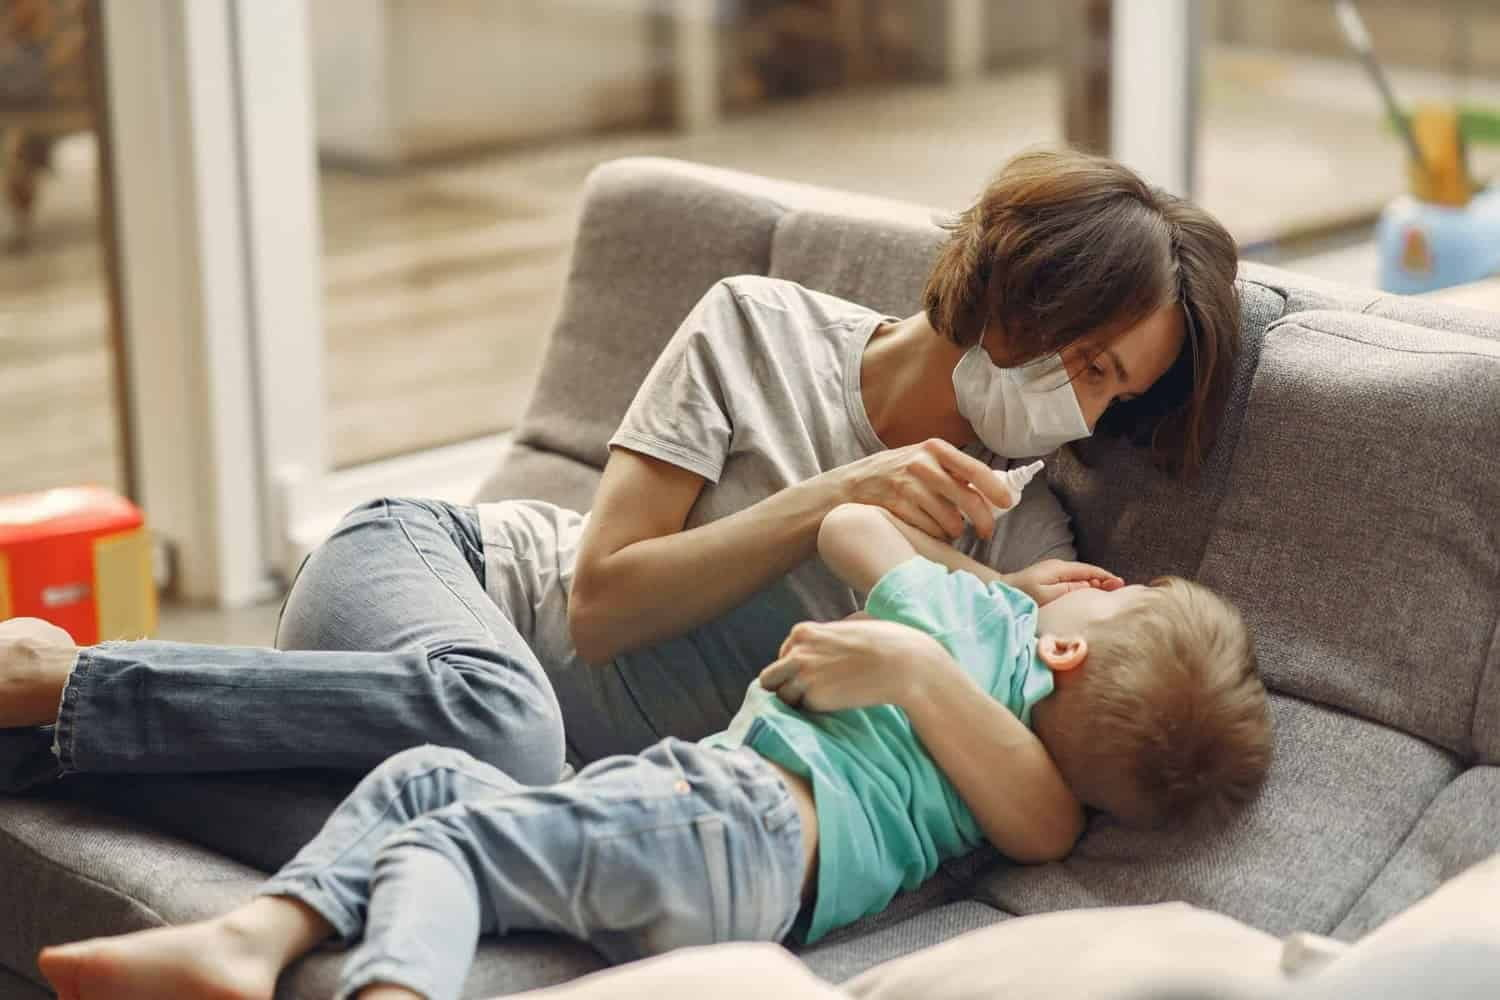 Mother wearing mask caring for child